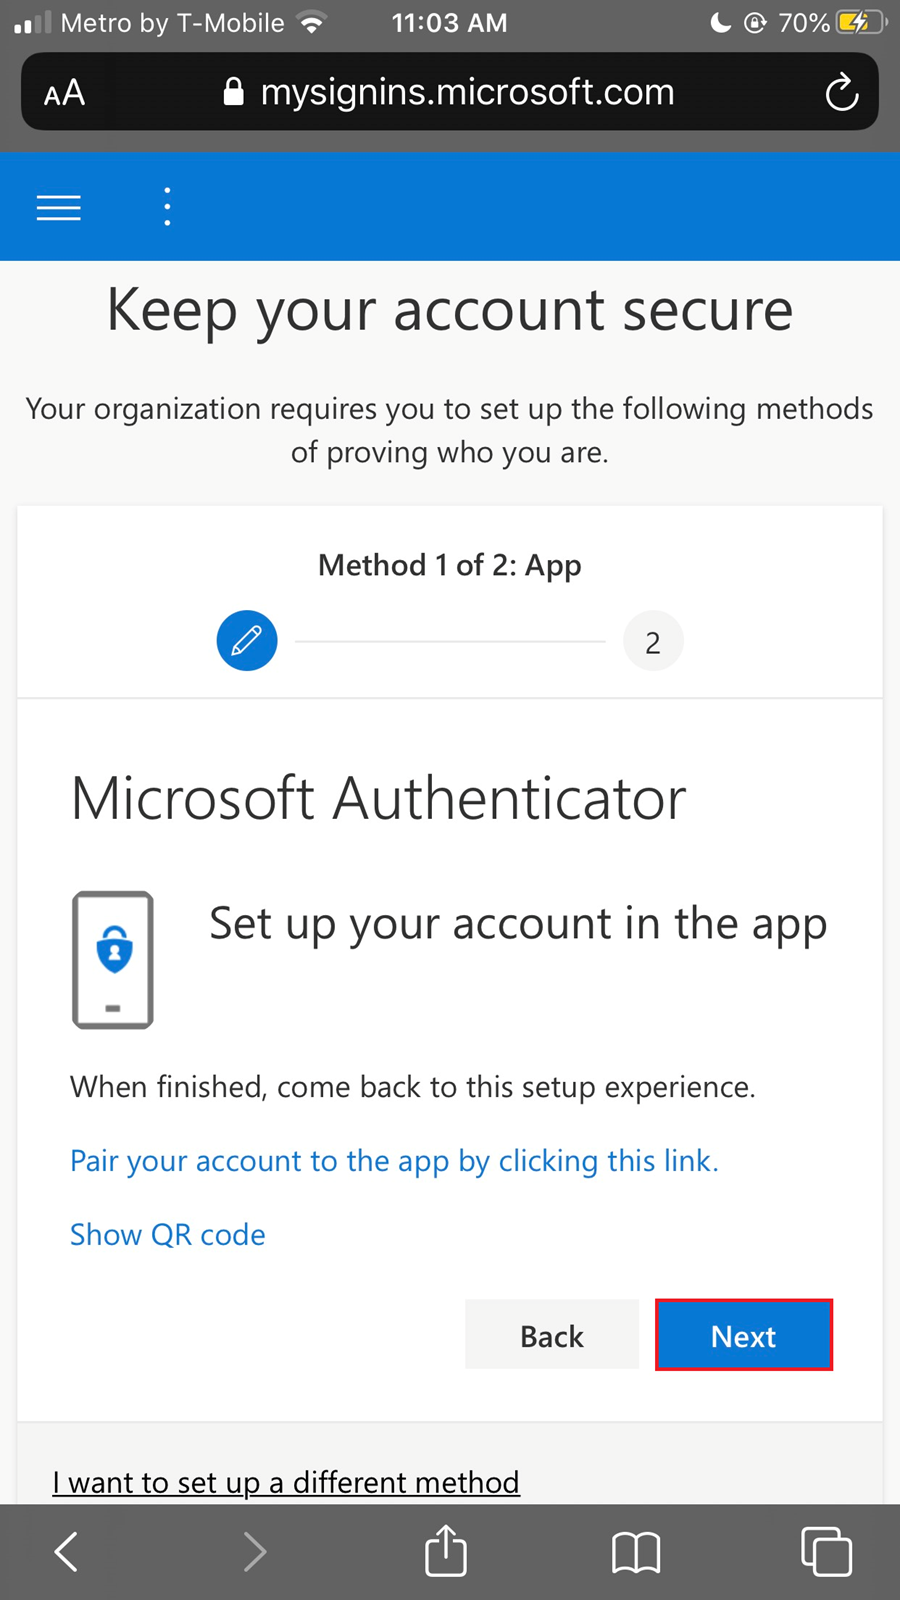 Click on Next to keep account secure